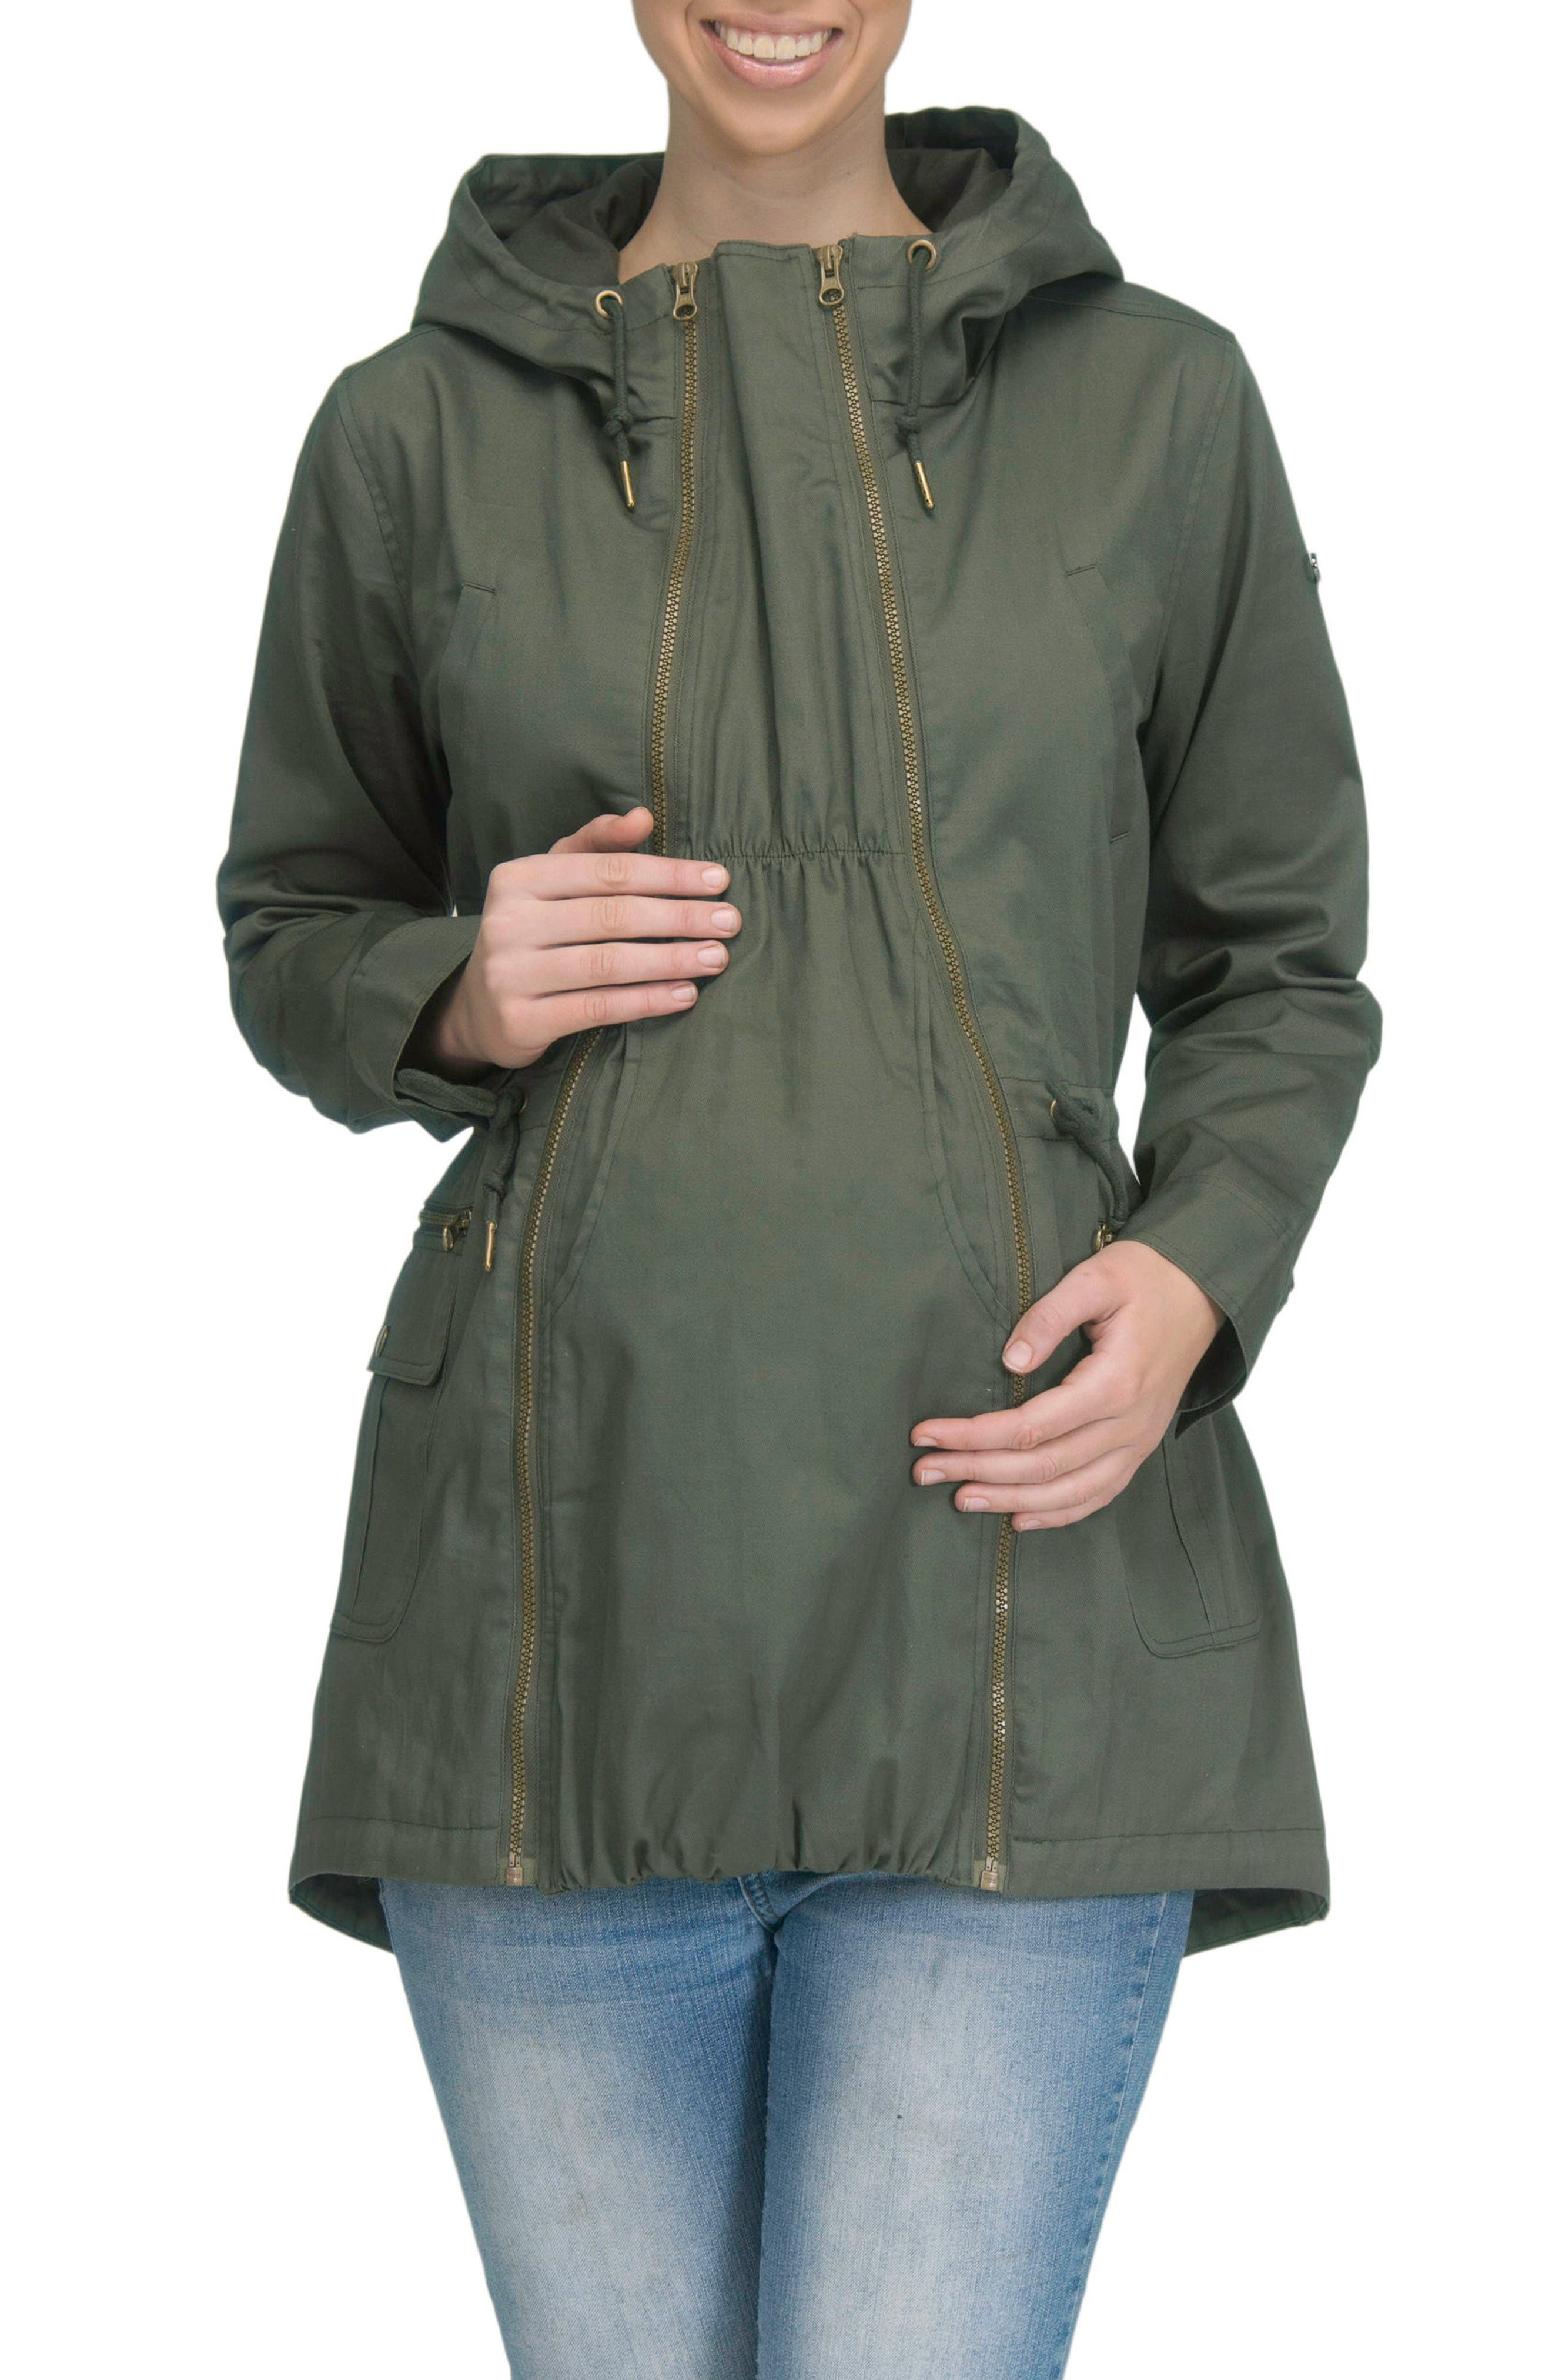 Main Image - Modern Eternity Convertible Military Maternity Jacket